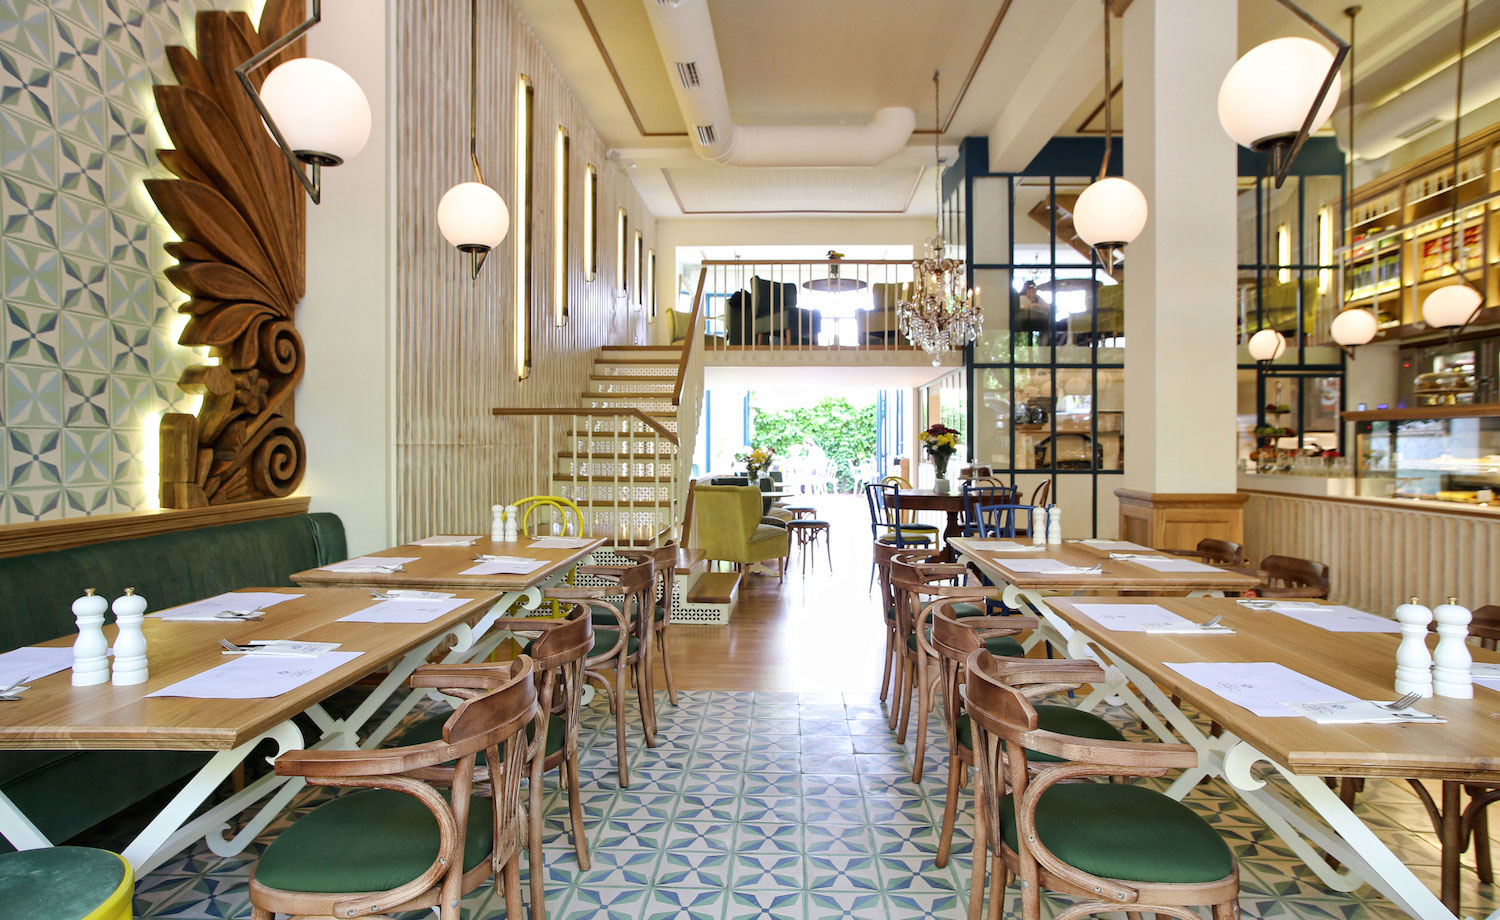 La maison du grec restaurant review athens greece wallpaper - La maison du danemark meuble ...